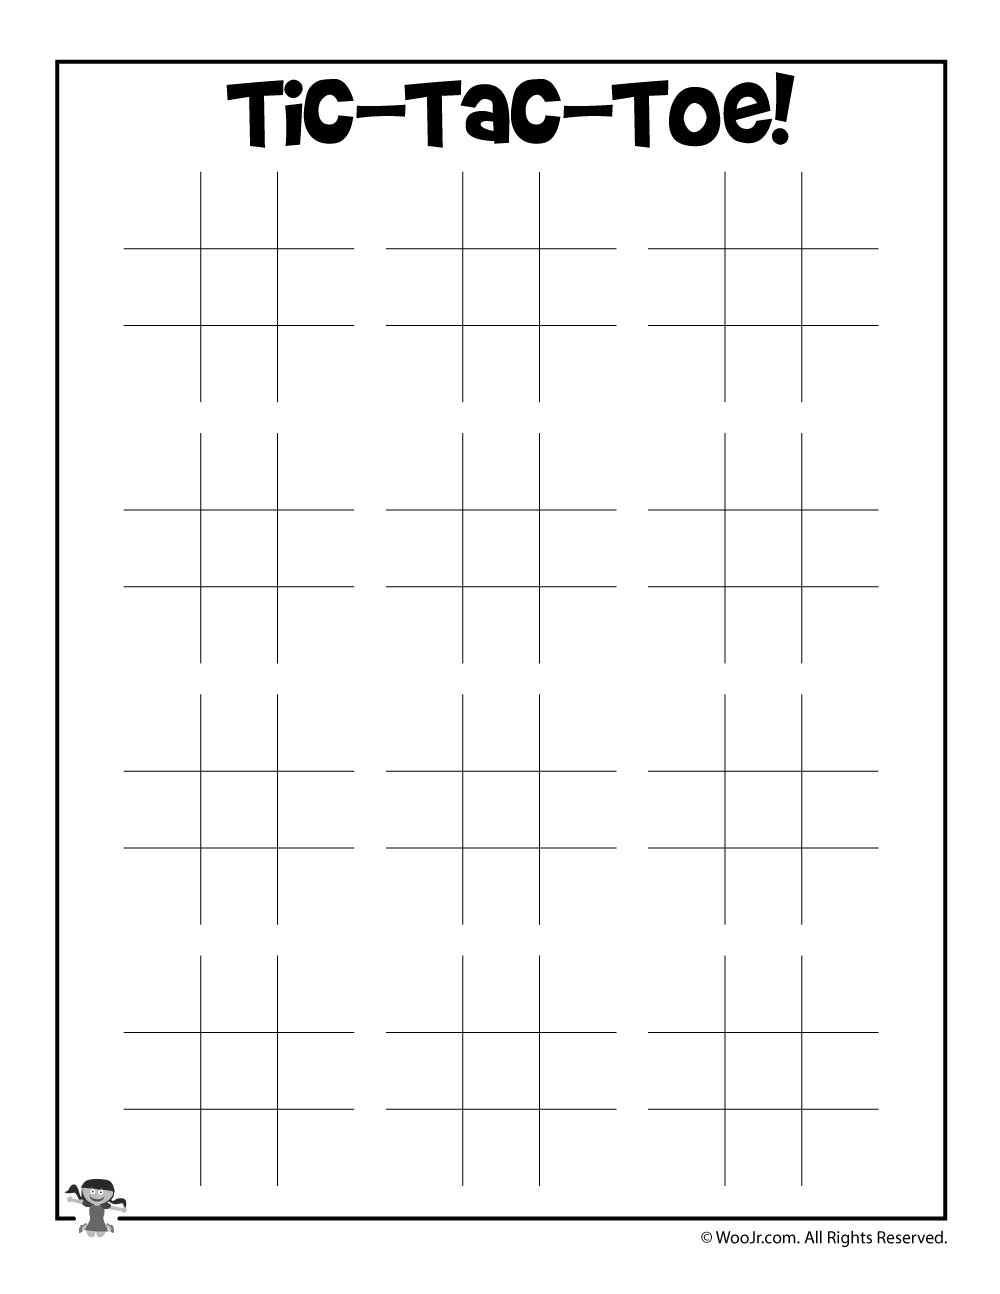 picture relating to Tic Tac Toe Printable named Printable Tic Tac Toe Video game Woo! Jr. Young children Actions